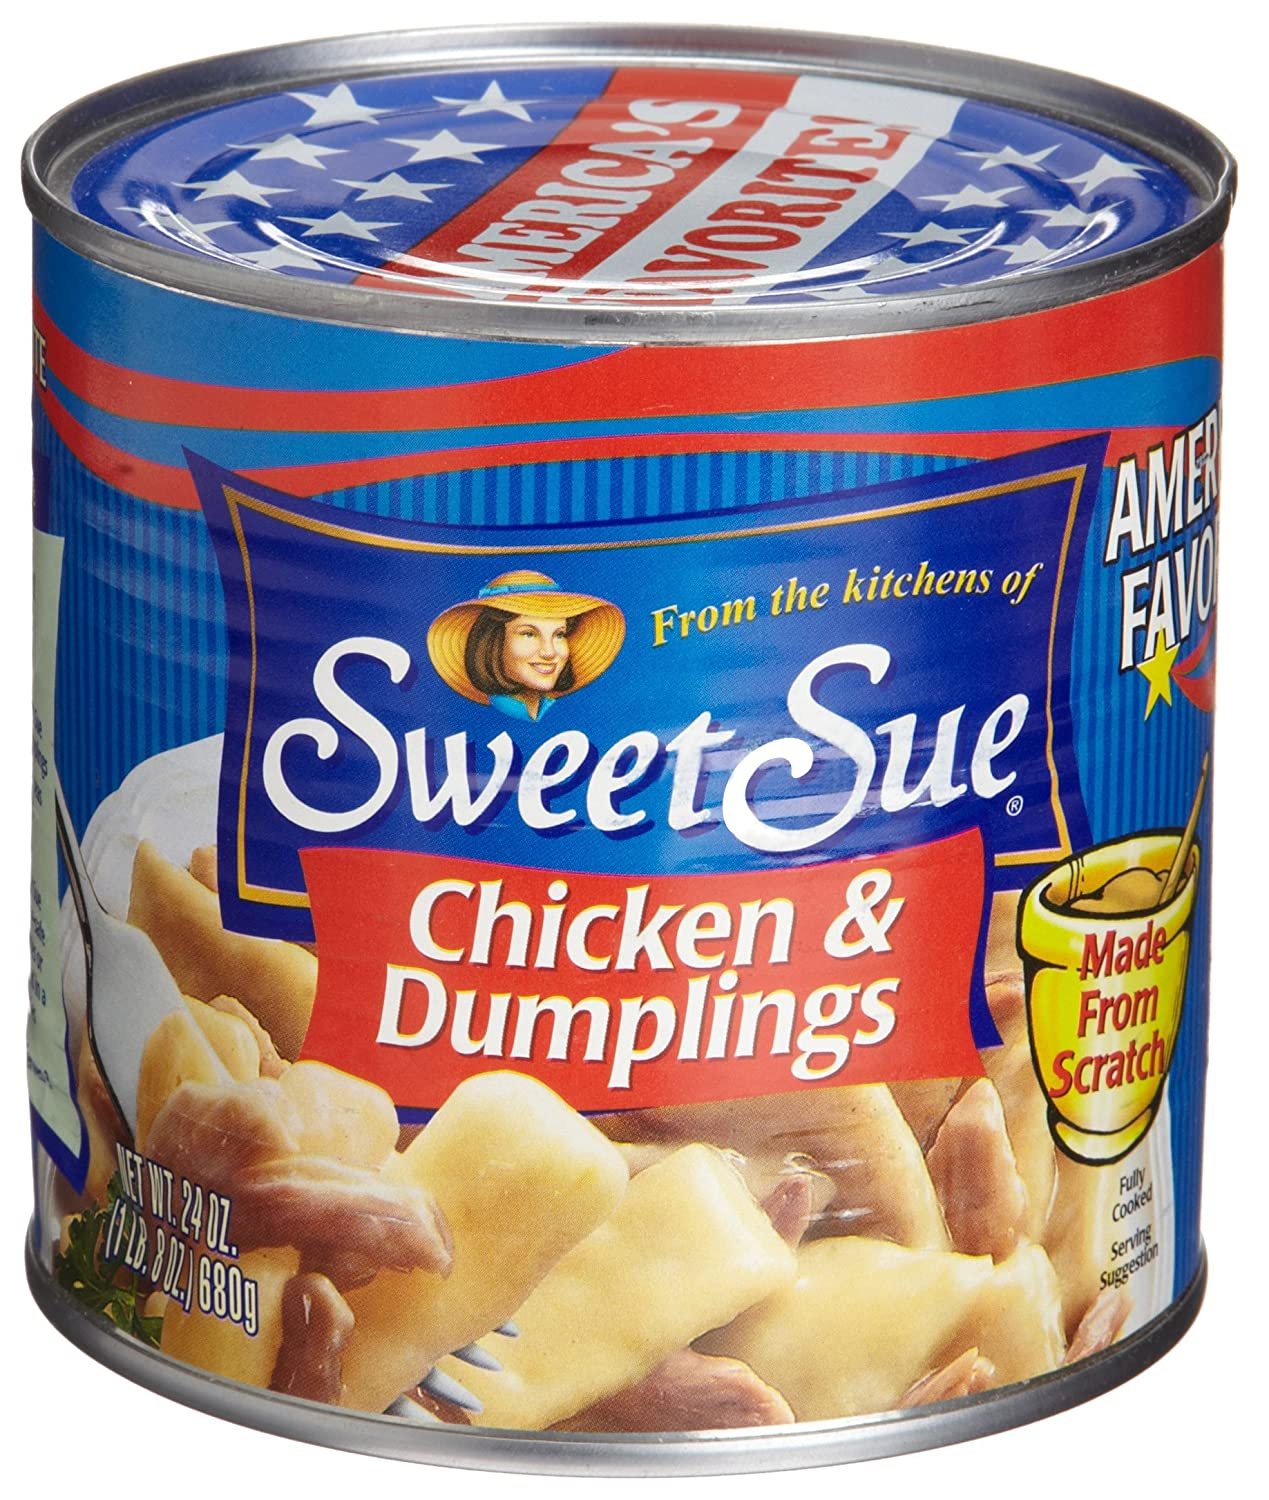 SWEET SUE Chunk White Chicken in Water, High Protein Food, Keto Food and Snacks, Gluten Free Food, High Protein Snacks, Bulk Canned Food, 5 Ounce Cans (Pack of 24)